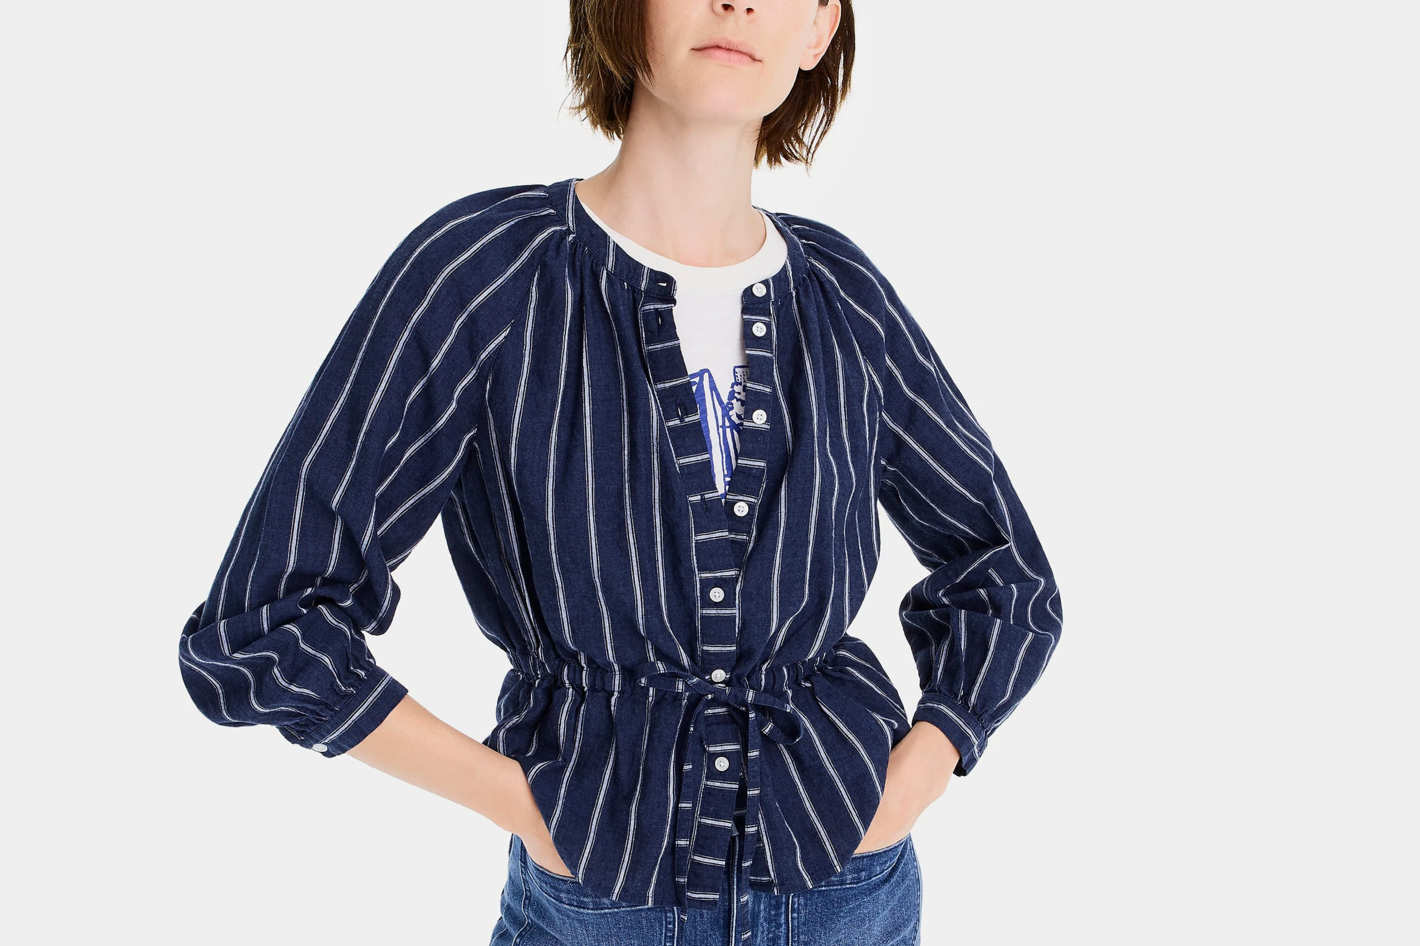 J. Crew Tie-Waist Top in Indigo Gauze Stripe